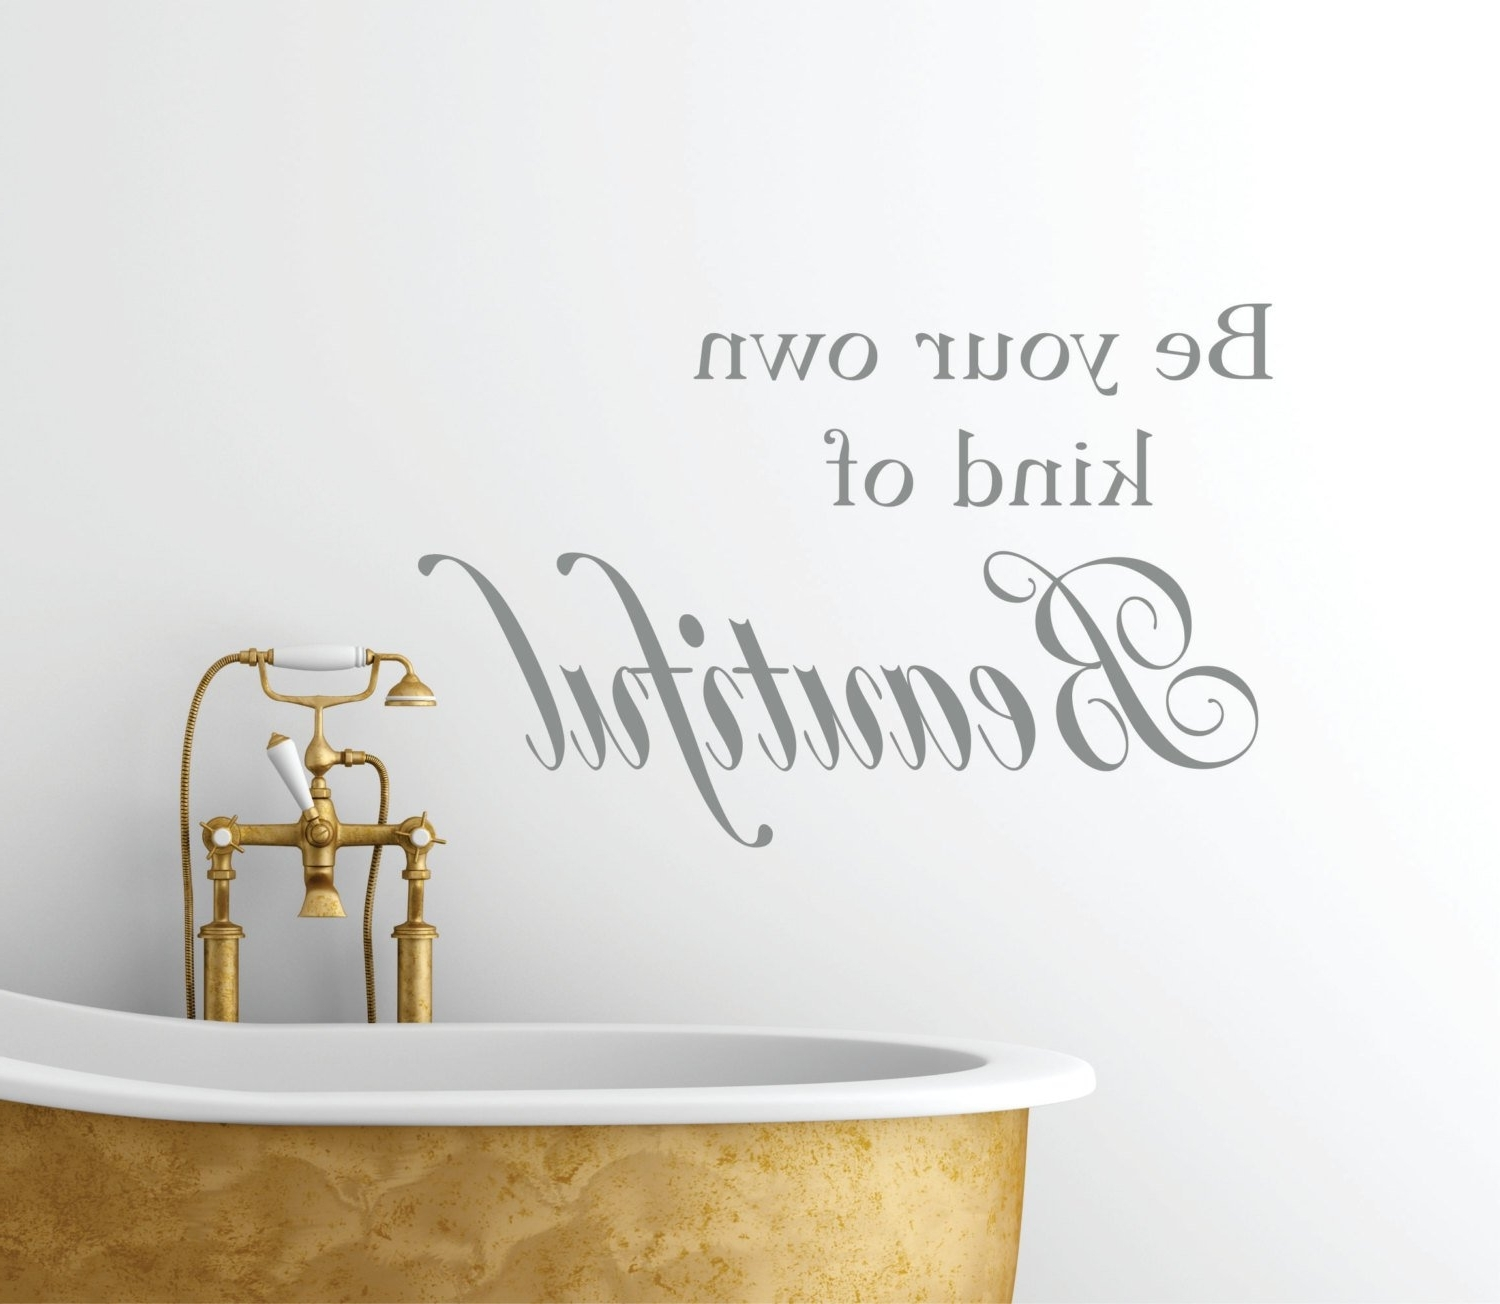 Be Your Own Kind Of Beautiful Vinyl Wall Decal // Bathroom Decor Intended For Most Popular Be Your Own Kind Of Beautiful Wall Art (View 3 of 15)